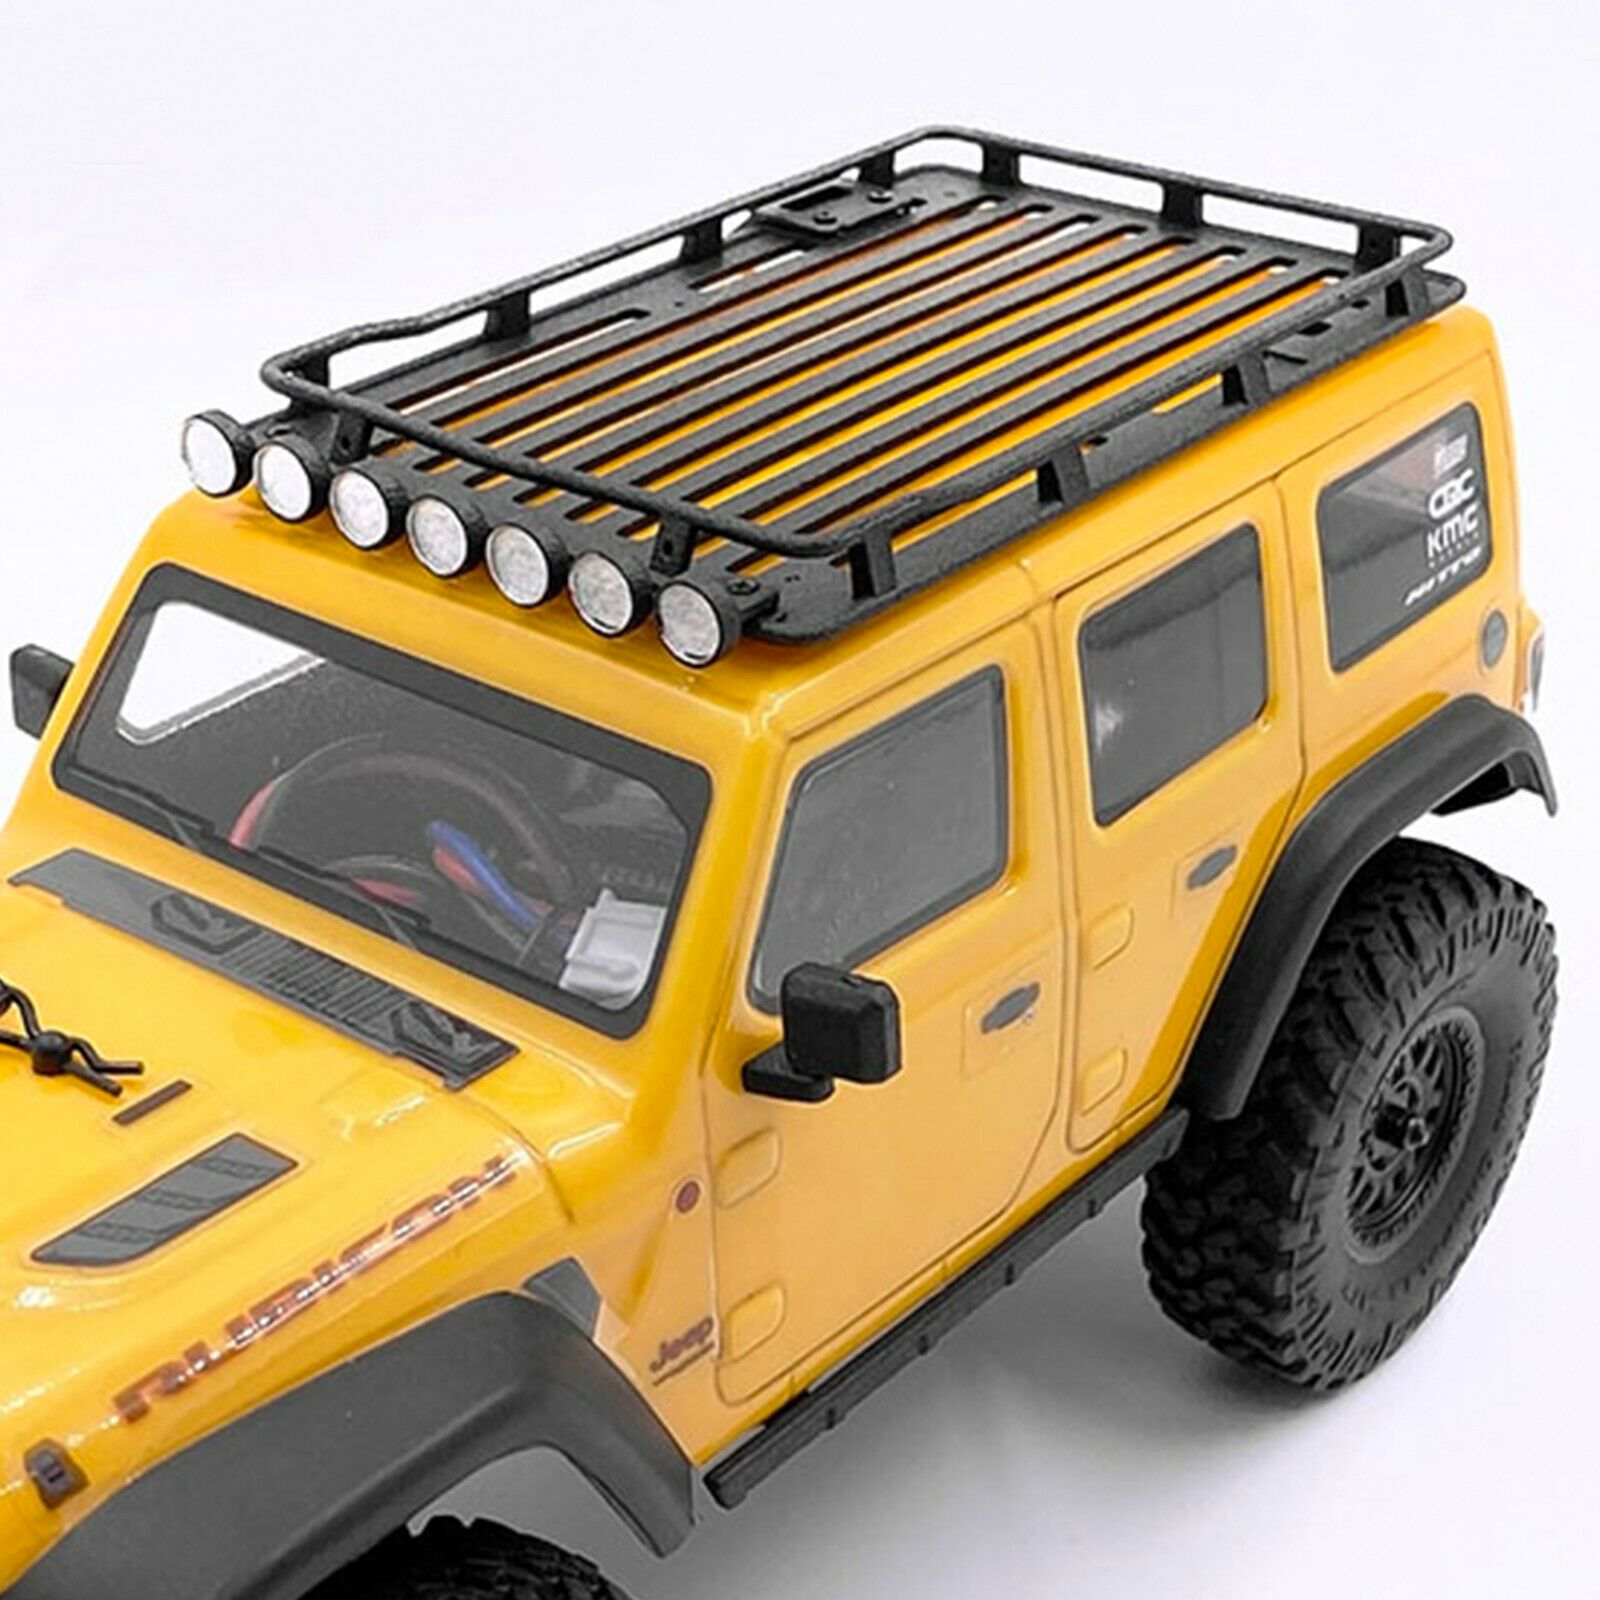 For Axial Scx 24 1 24 Rc Car Truck Buggy Roof Rack Luggage Spotlights Ladder 603922676775 Ebay In 2020 Luggage Carrier Roof Rack Rc Cars For Sale